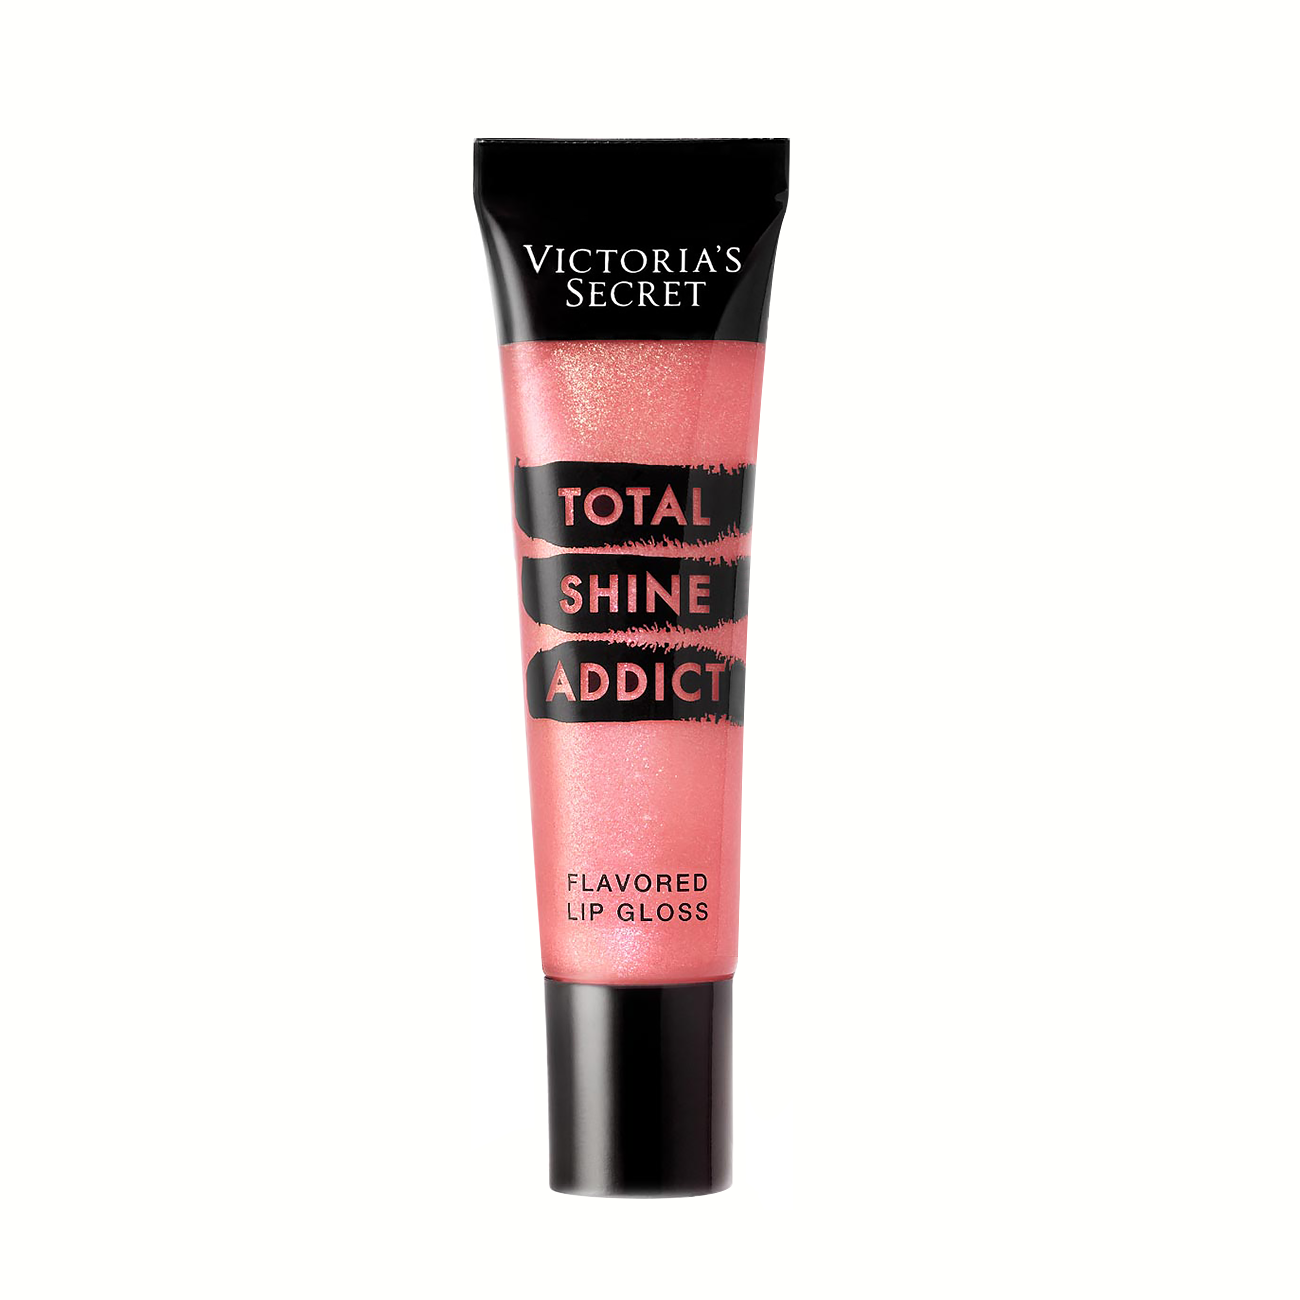 TOTAL SHINE ADDICT LIP GLOSS 13ml poza noua